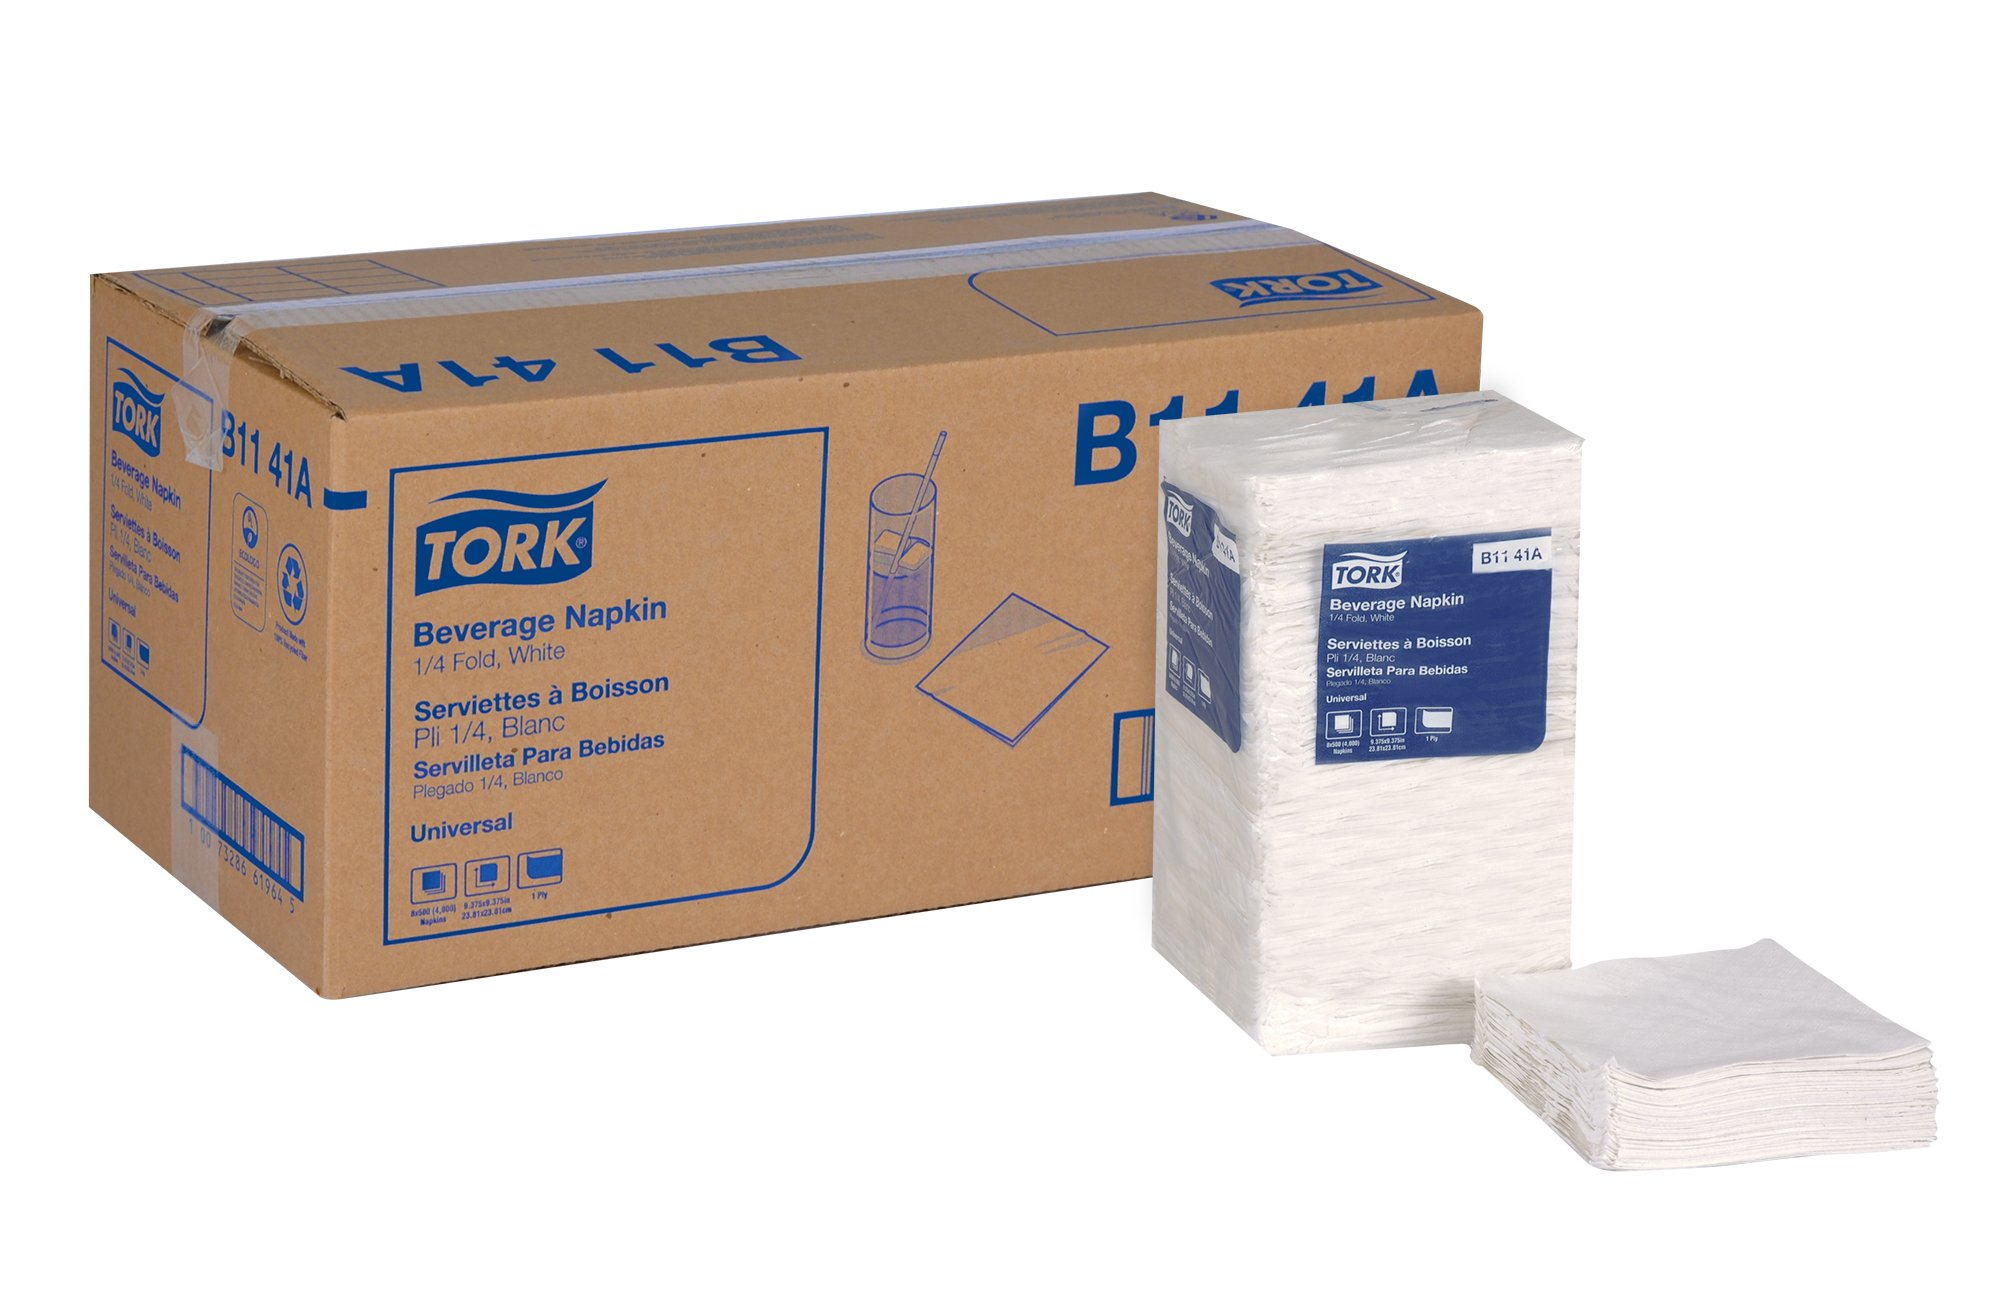 Tork Universal B1141A Beverage Napkin, 1-Ply, 1/4 Fold, 9.38'' Width x 9.38'' Length, White (Case of 8 Packs, 500 per Pack, 4,000 Napkins)